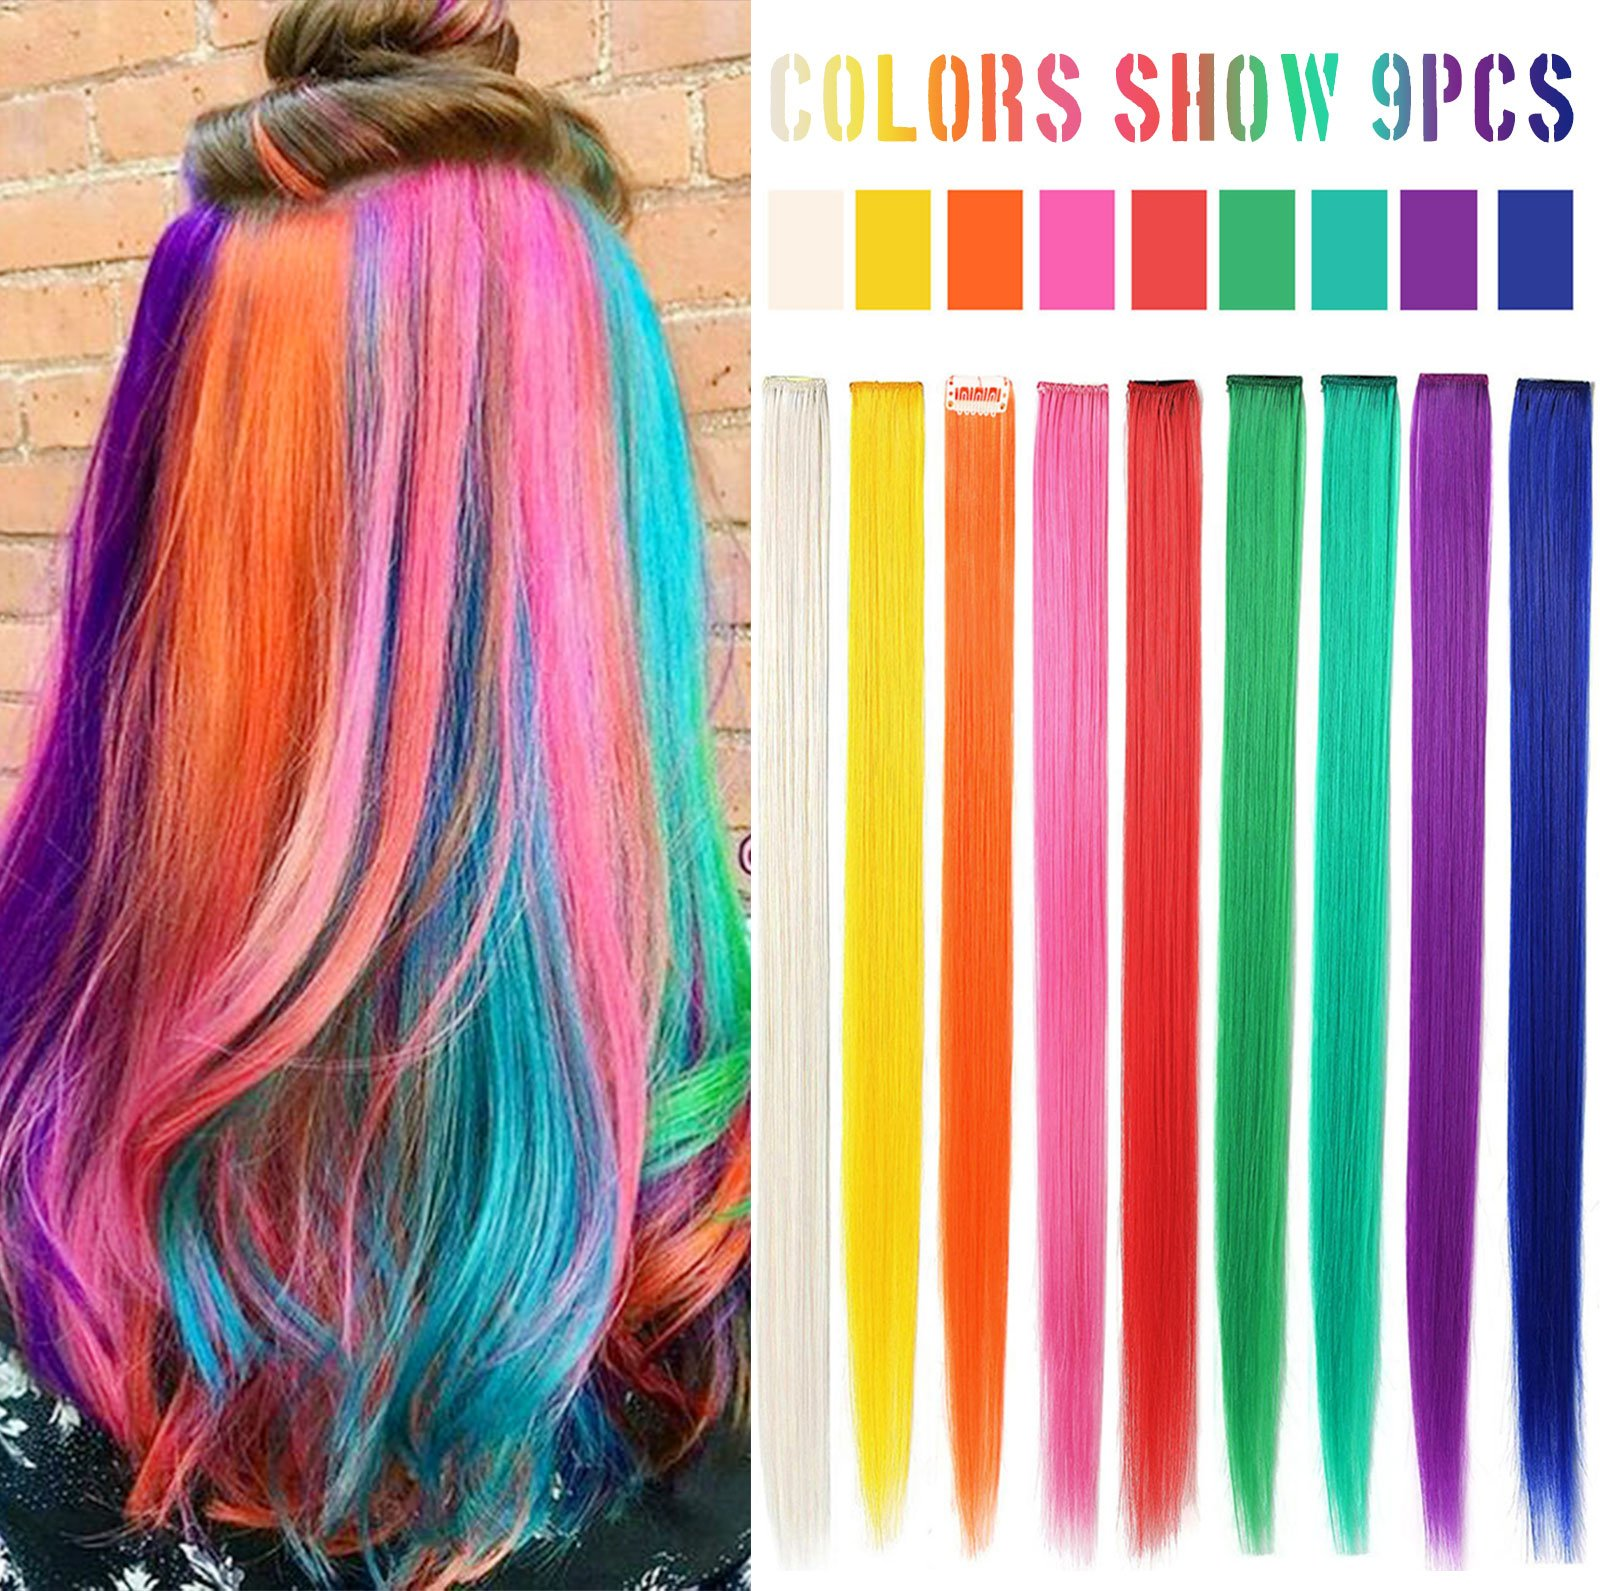 MQ 9PCS Rainbow Hair Doll Accessories Colored Party Highlights Straight Hair Clip Extensions for Amercian Girls and Dolls Wig Pieces (Rainbow Color)